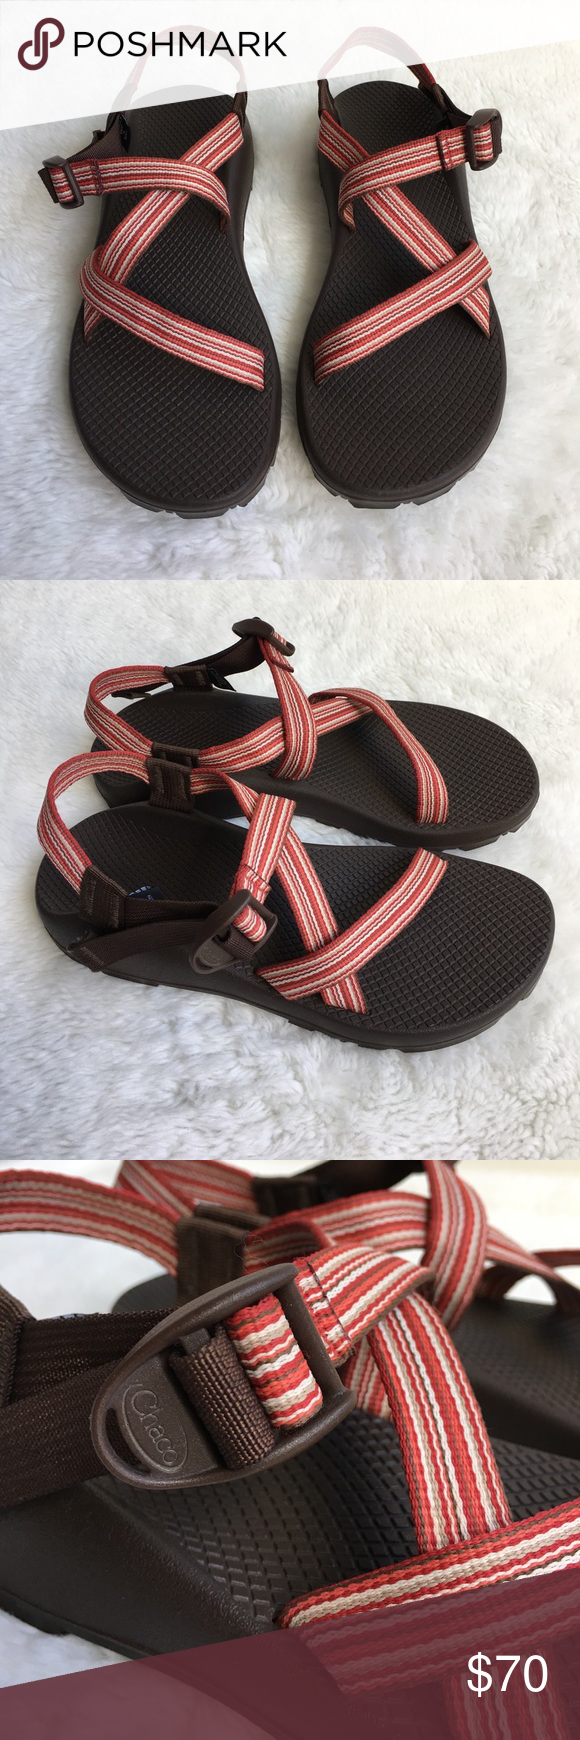 64fd300a26bd Chaco Women s Z1 Red Striped Sandals size 10 Preowned authentic Chaco  Women s Z1 Red Striped Sandals size 10. Please look at pictures for better  reference.